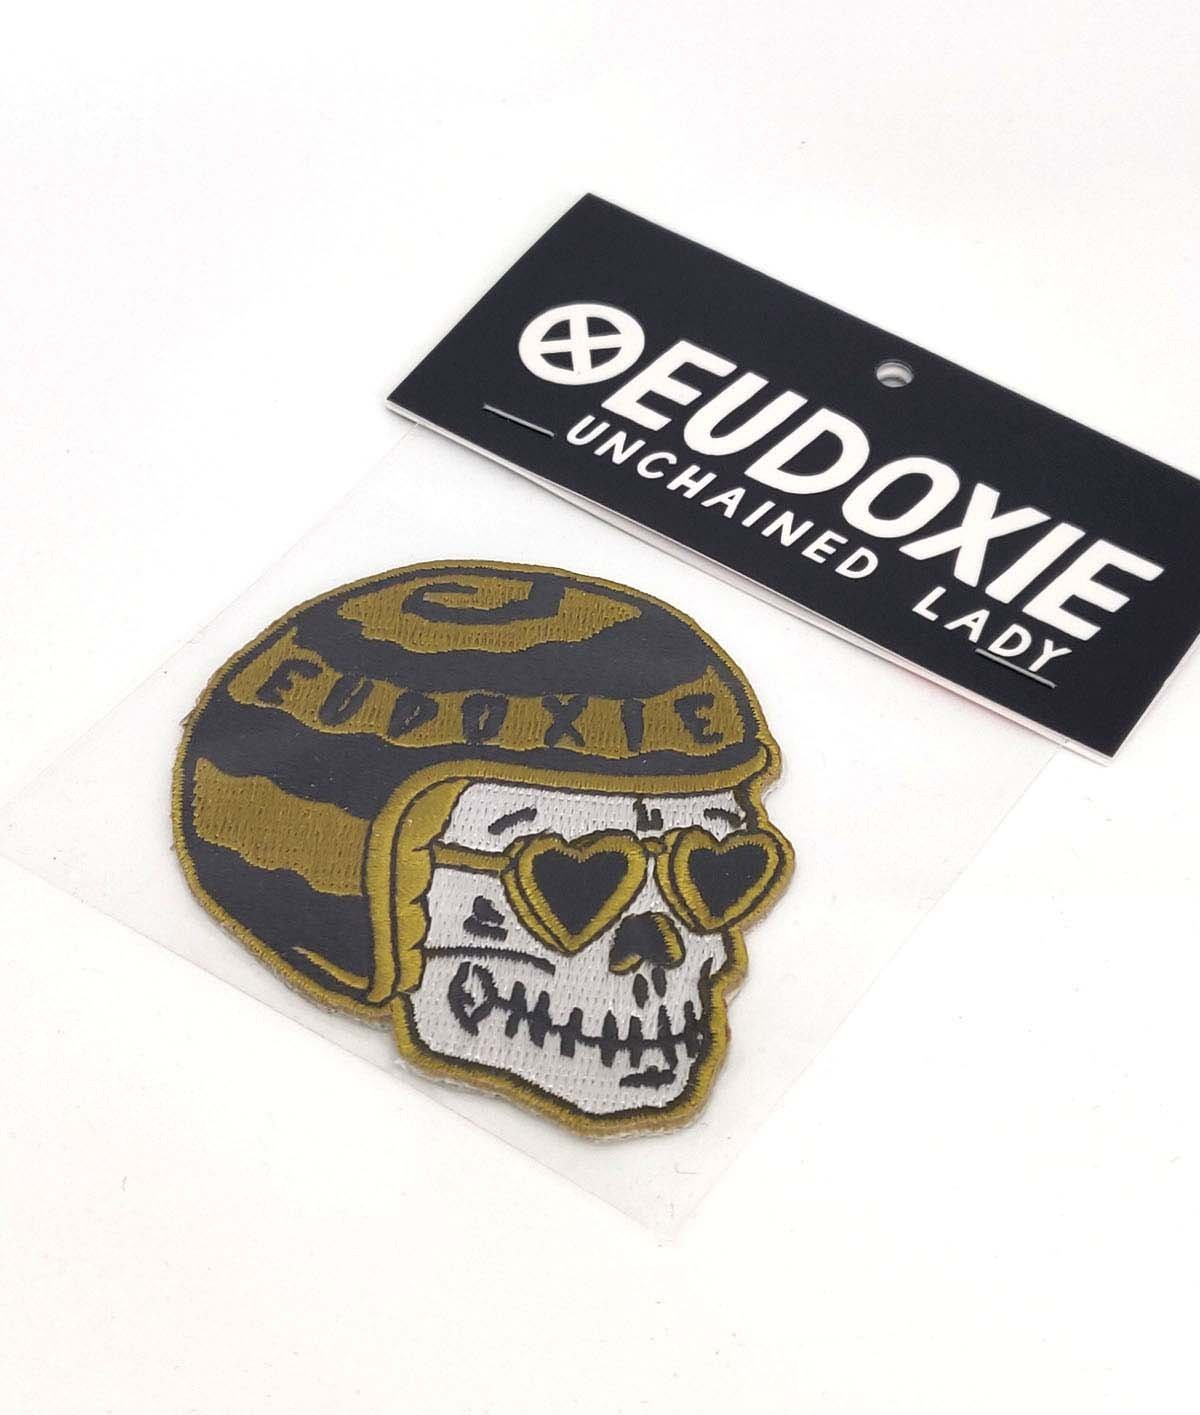 Eudoxie - Eudoxie Skull Patches - Accessories - Salt Flats Clothing